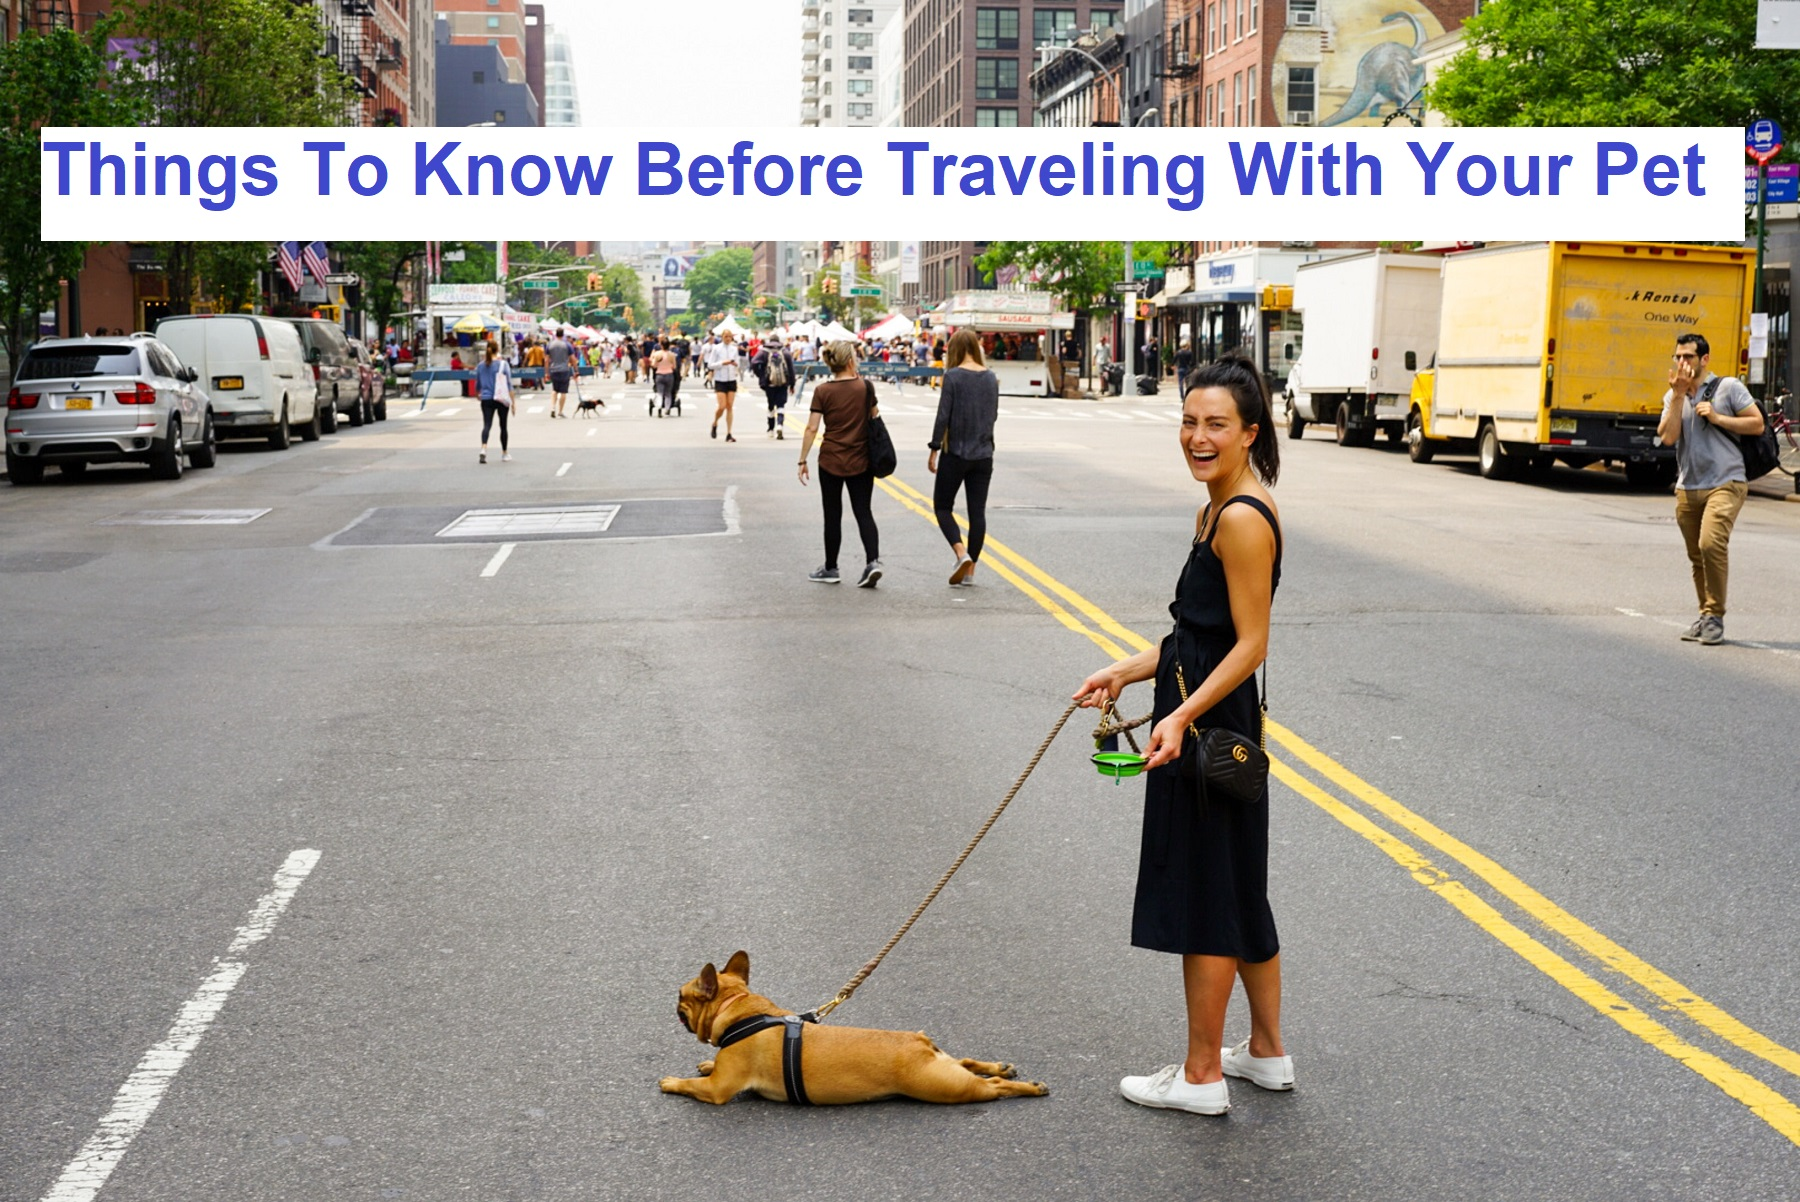 Things To Know Before Traveling With Your Pet